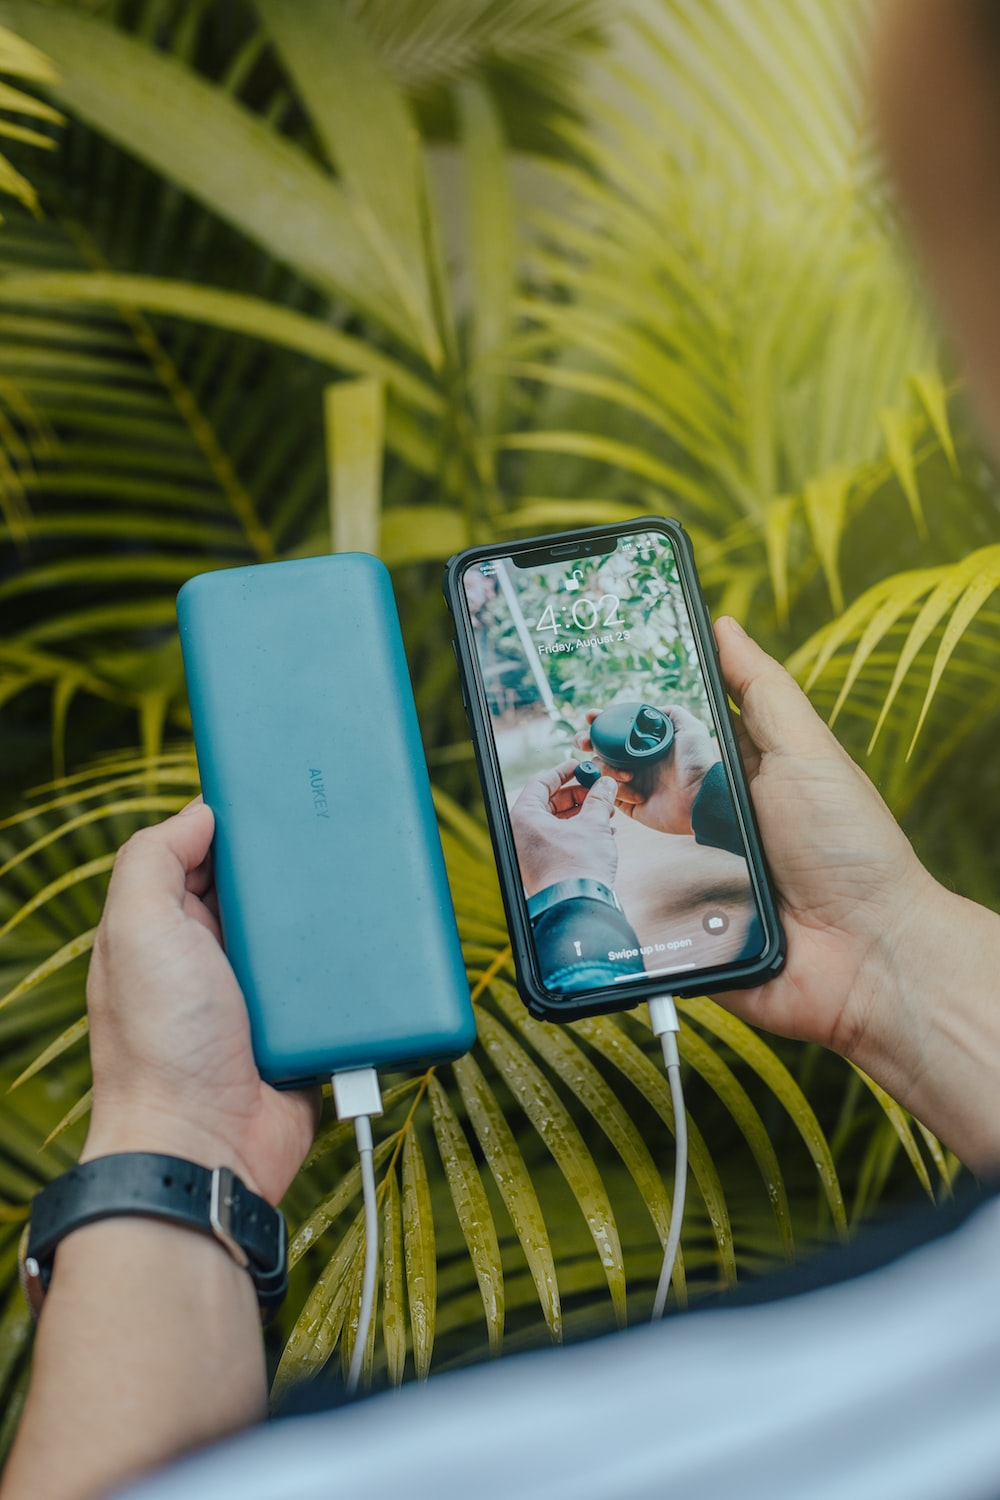 black smartphone and green powerbank close-up photography